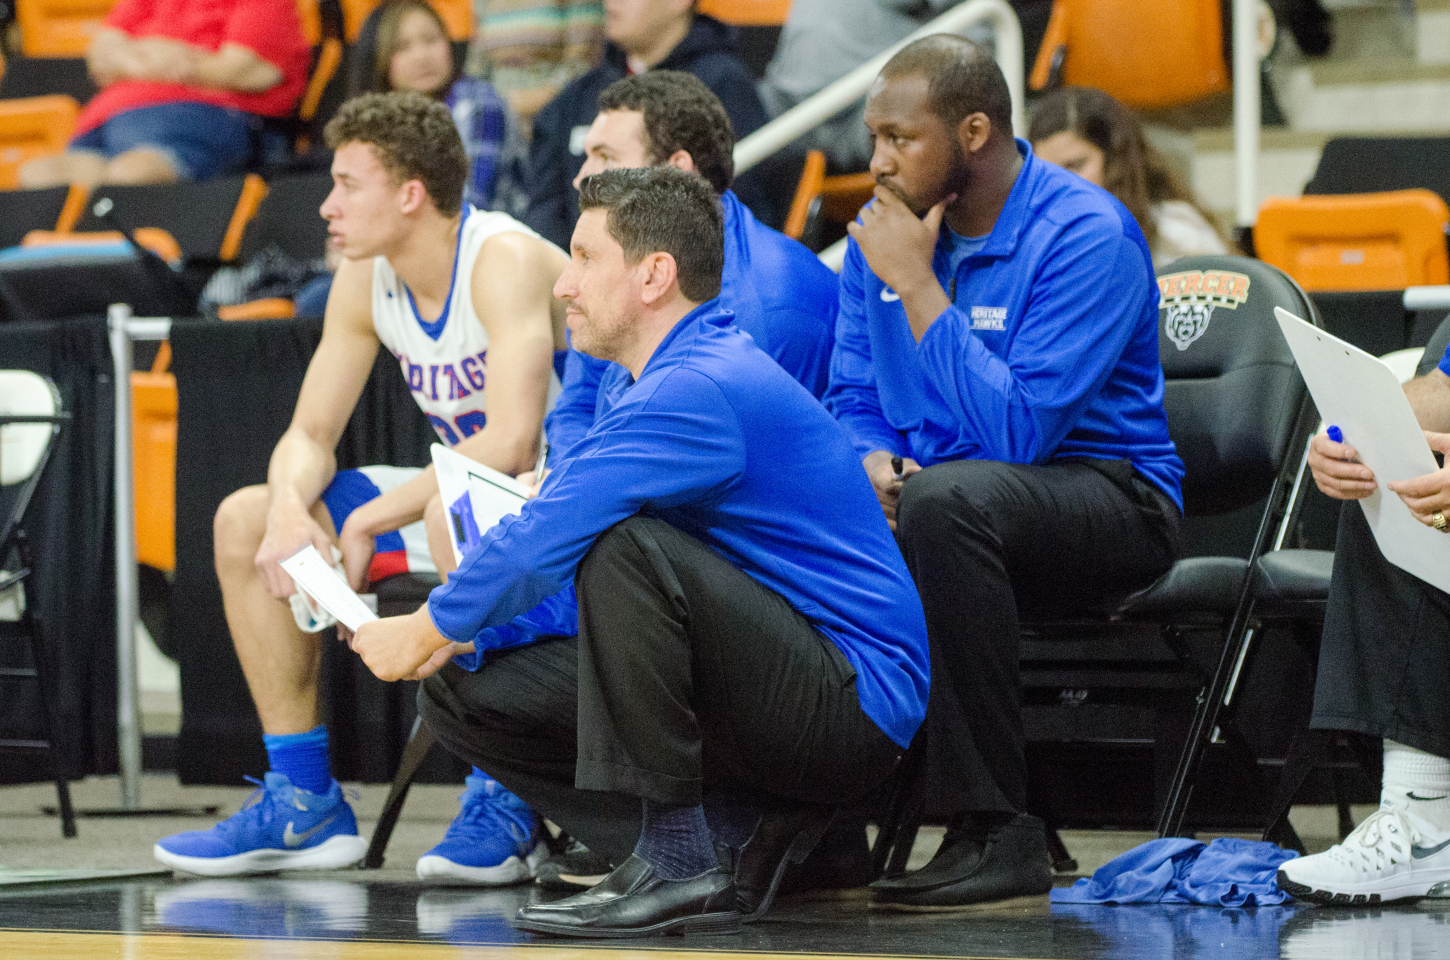 HS BASKETBALL: Hawks pass coaching baton from Lieberman to Jerome following trip to state finals